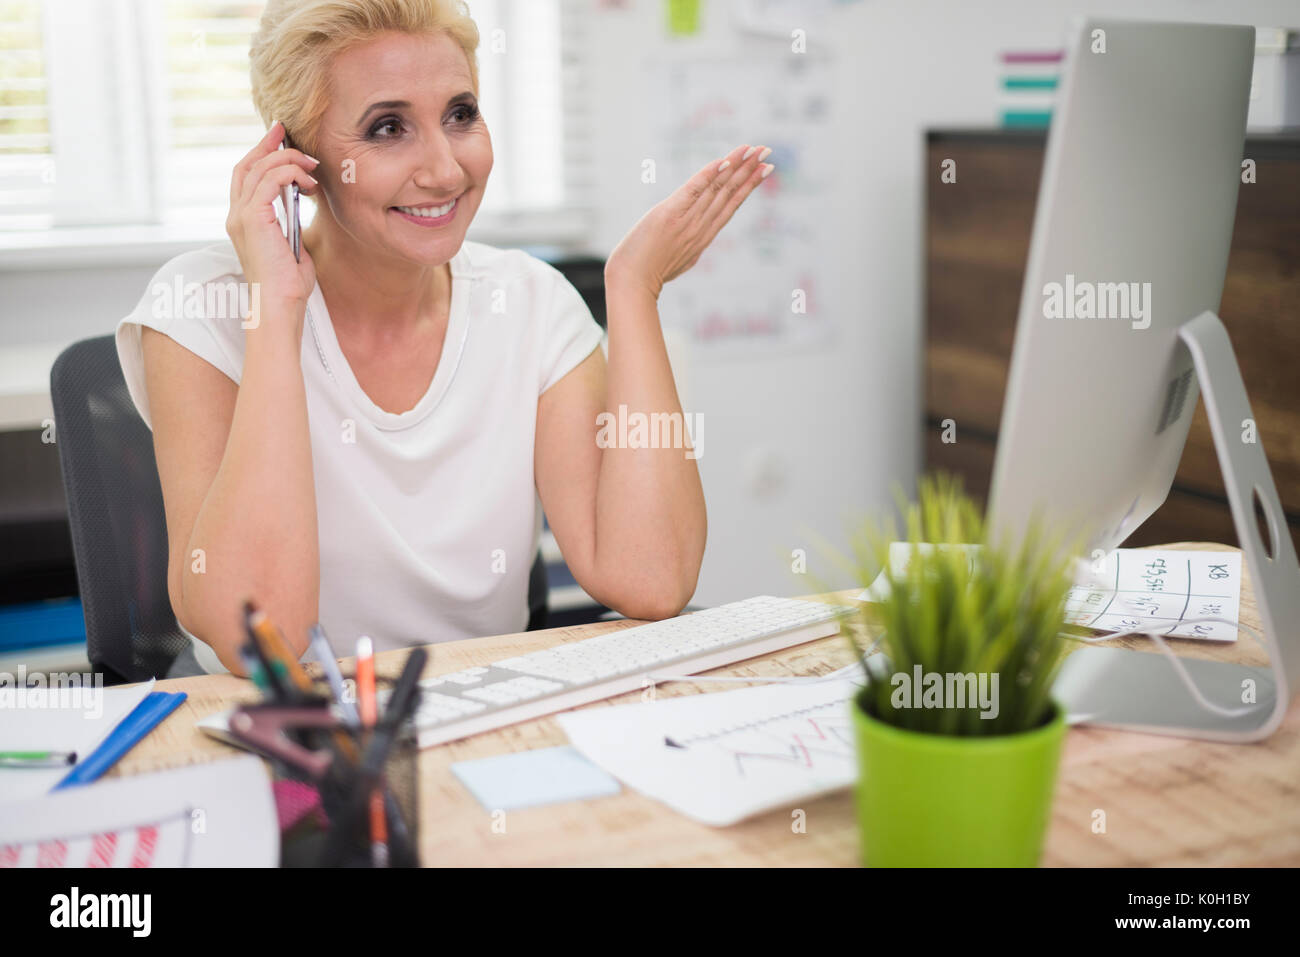 Executive of the company talking on the phone - Stock Image